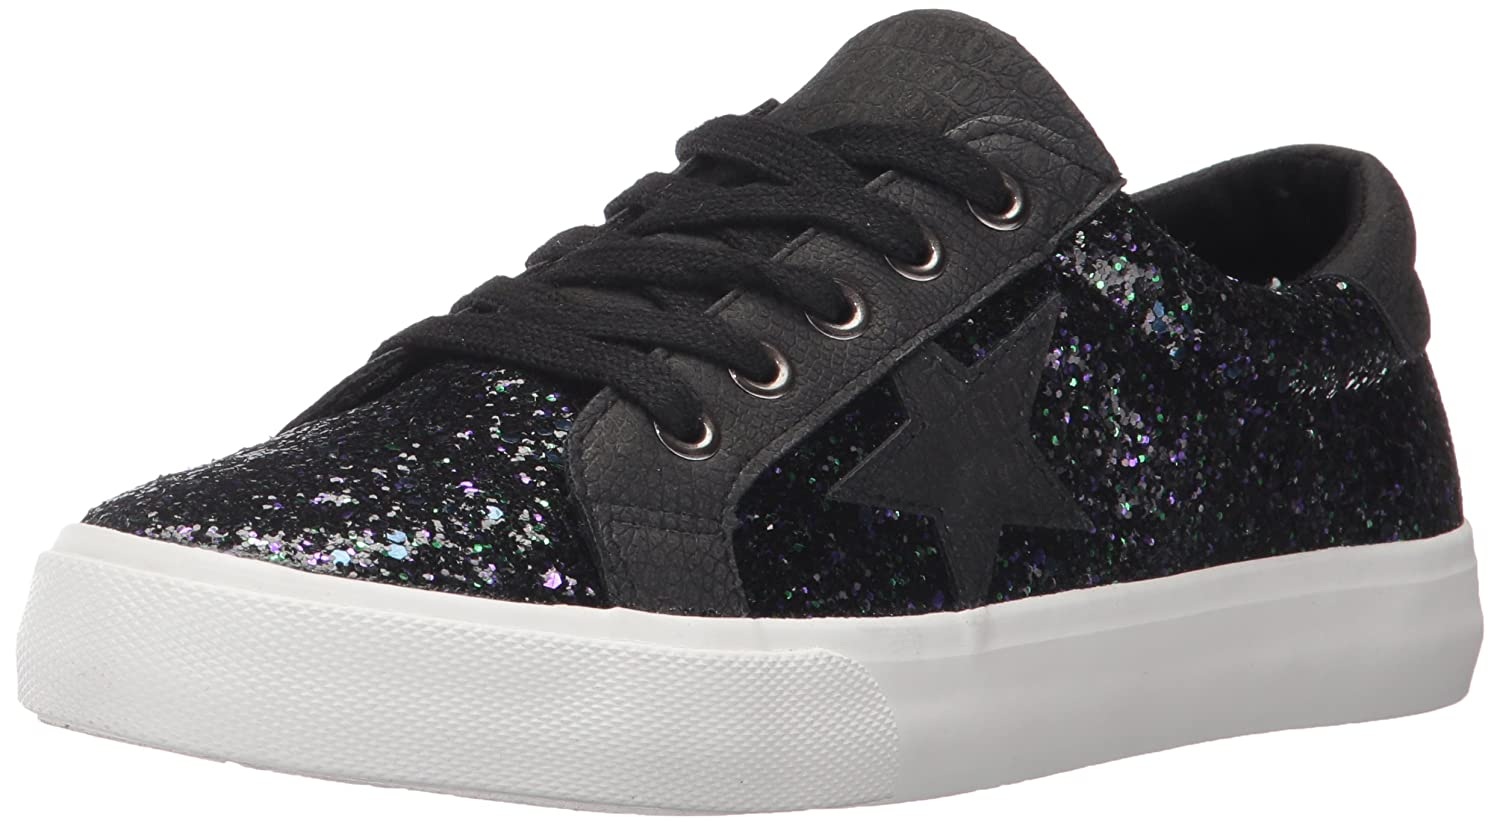 Not Rated Women's Illana Fashion Sneaker B06Y5P8P1T 6.5 B(M) US|Black